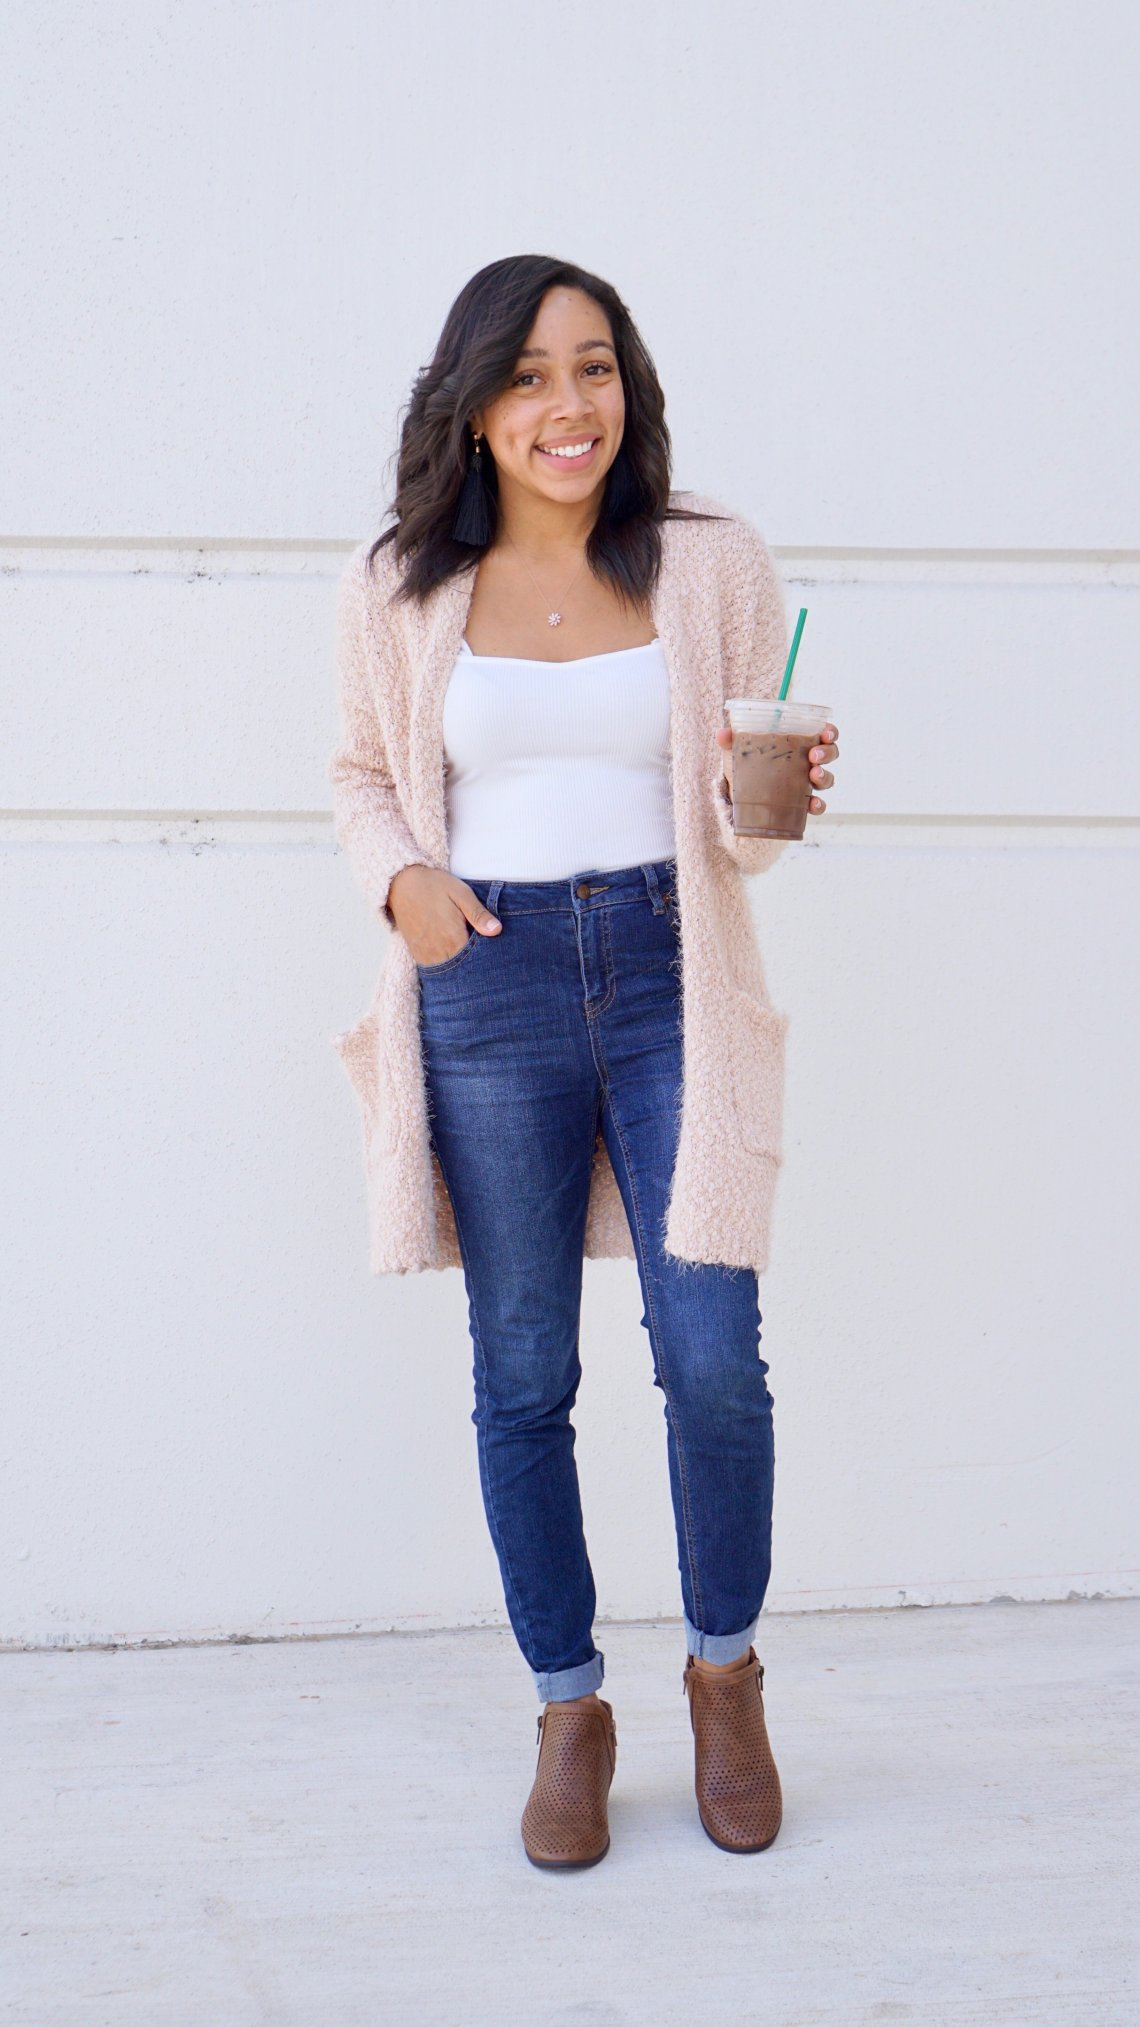 cardi, cardigan, layering, fall looks, fall outfit, sweater, sweater weather, fashion styles, style inspiration, style, style, beauty & accessories, fashion, fashion style, fashion 2018, fashion, fashion random, fashionista, fashion & lifestyle, cardigan, fall fashion, fall style, seasonal style, tous, tous bag,